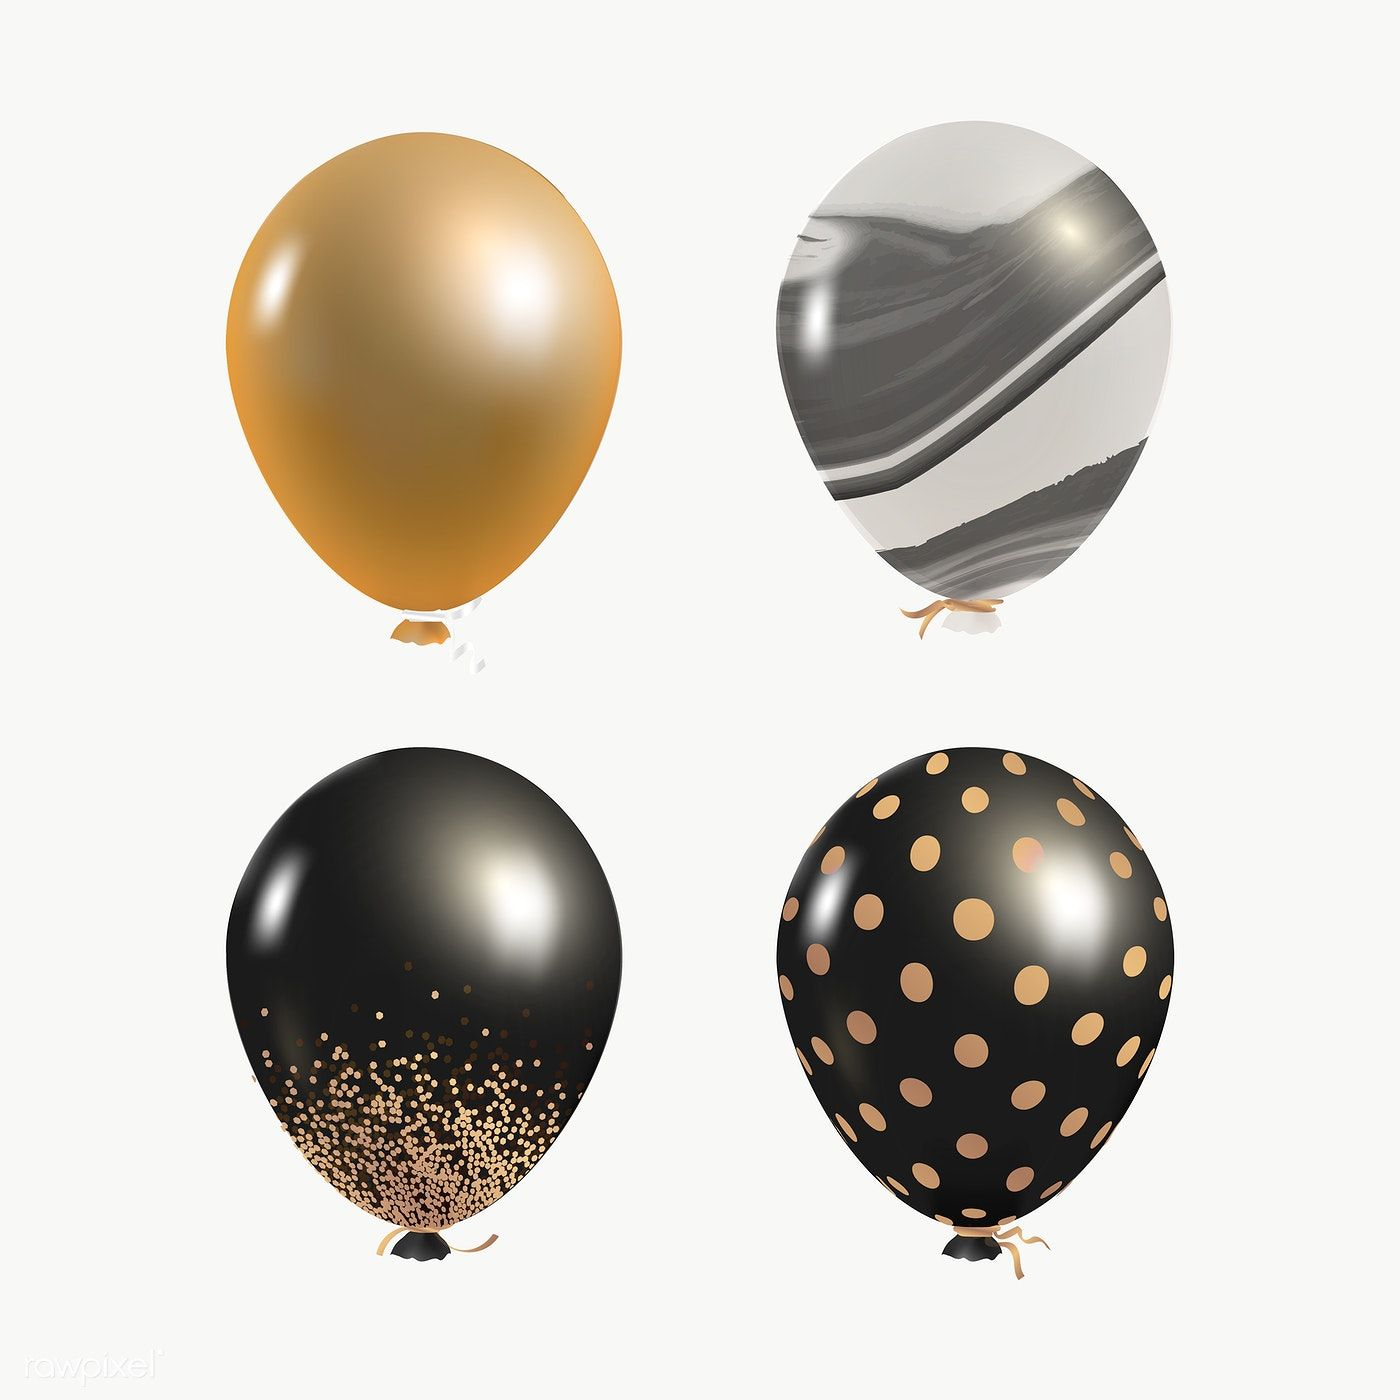 Elegant Event Balloons Set Transparent Png Free Image By Rawpixel Com Kappy Kappy Marble Balloons Balloons Black Balloons